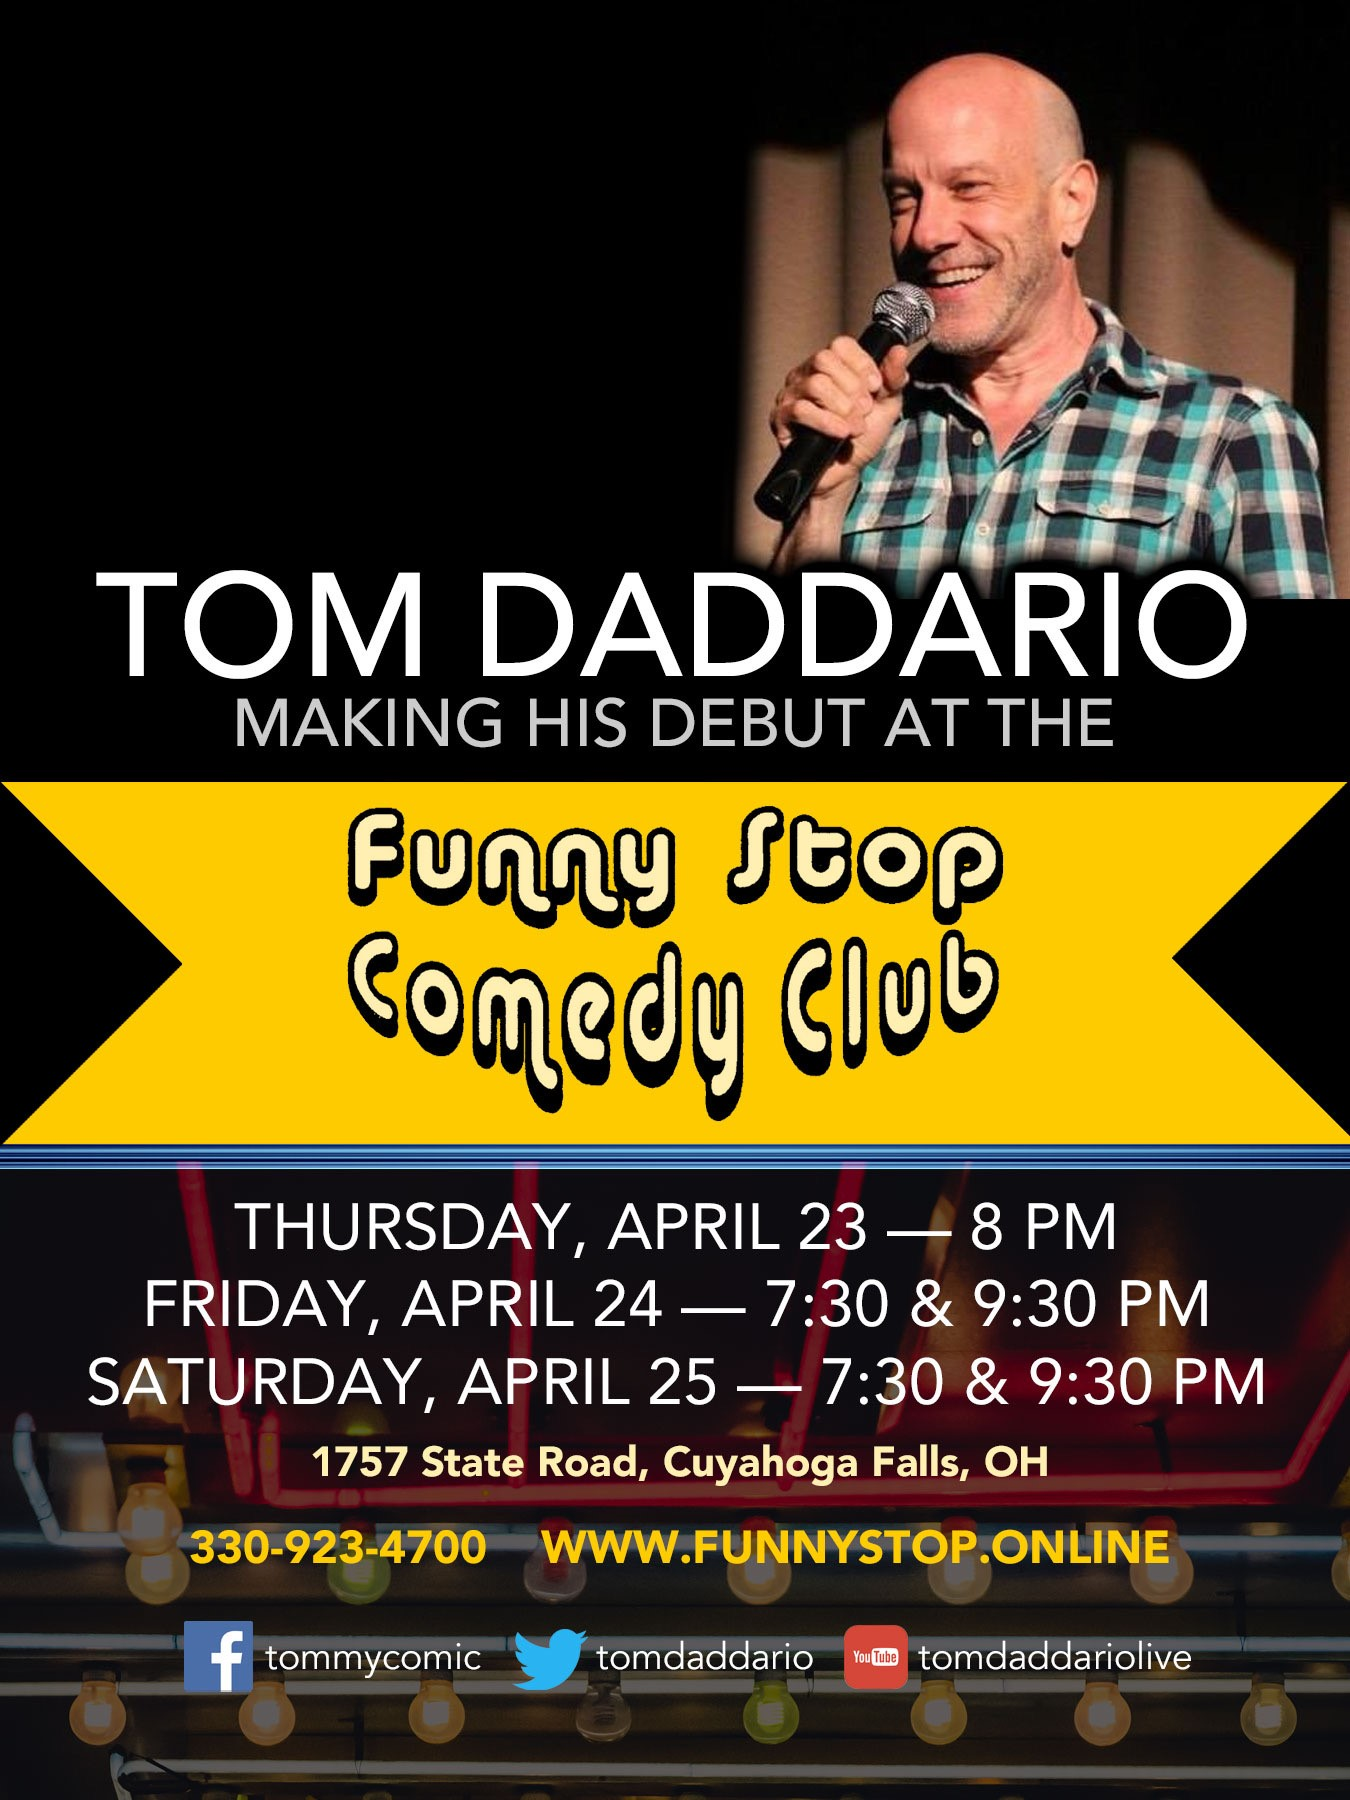 Tom Daddario 9:30 Show  on Apr 24, 21:30@Funny Stop Comedy Club - Buy tickets and Get information on Funny Stop funnystop.online